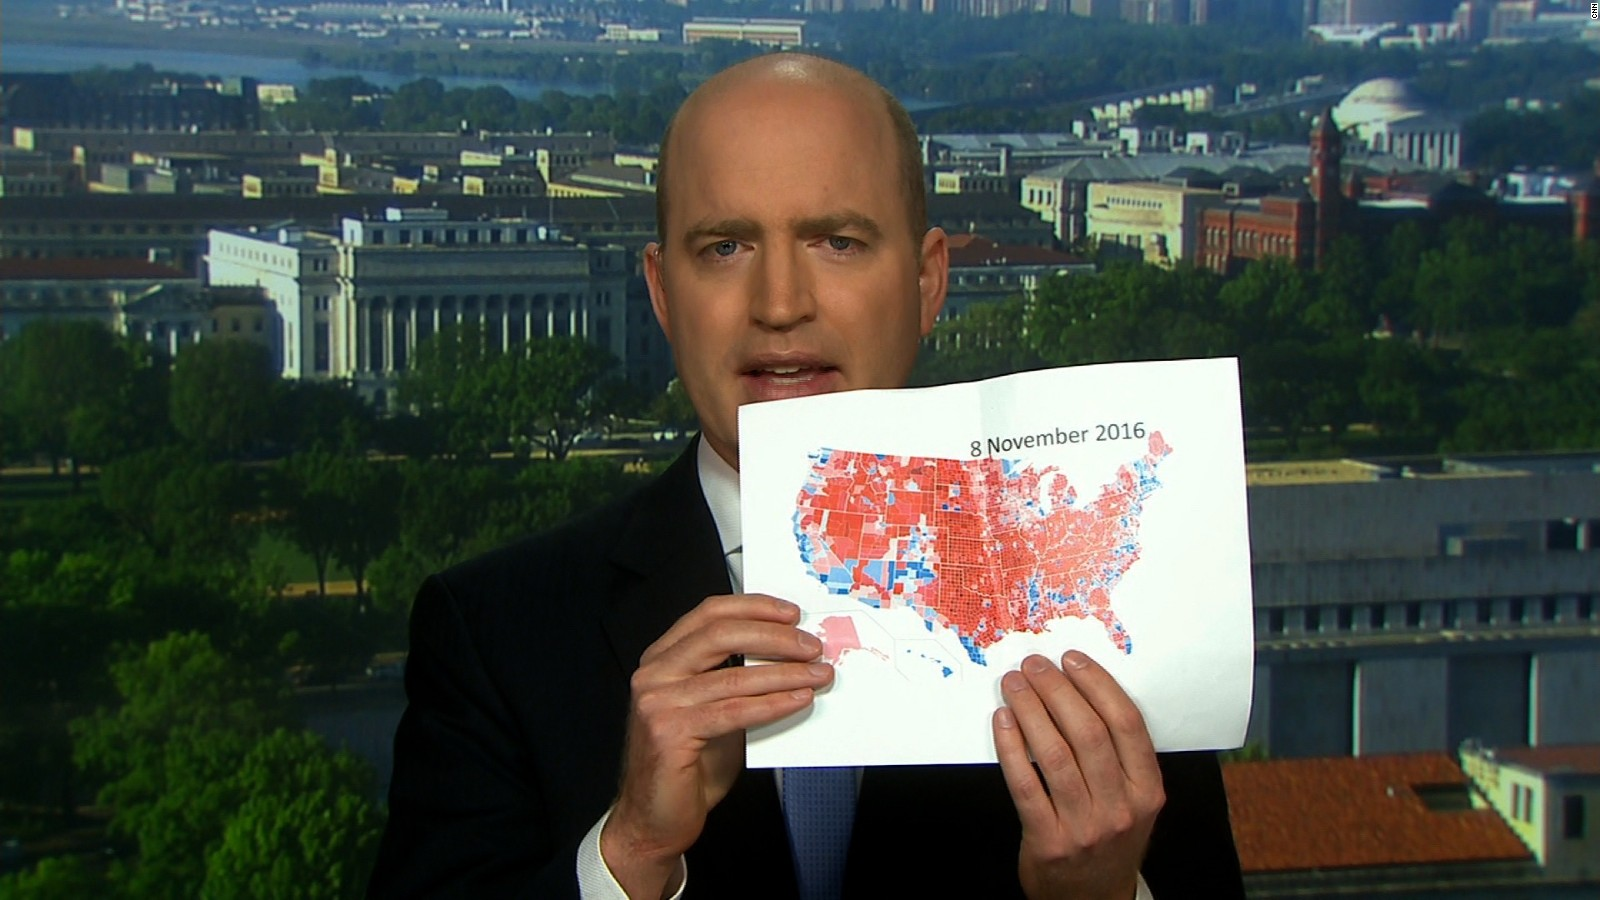 journalist trump brought printed map handouts of electoral wins to interview cnnpolitics